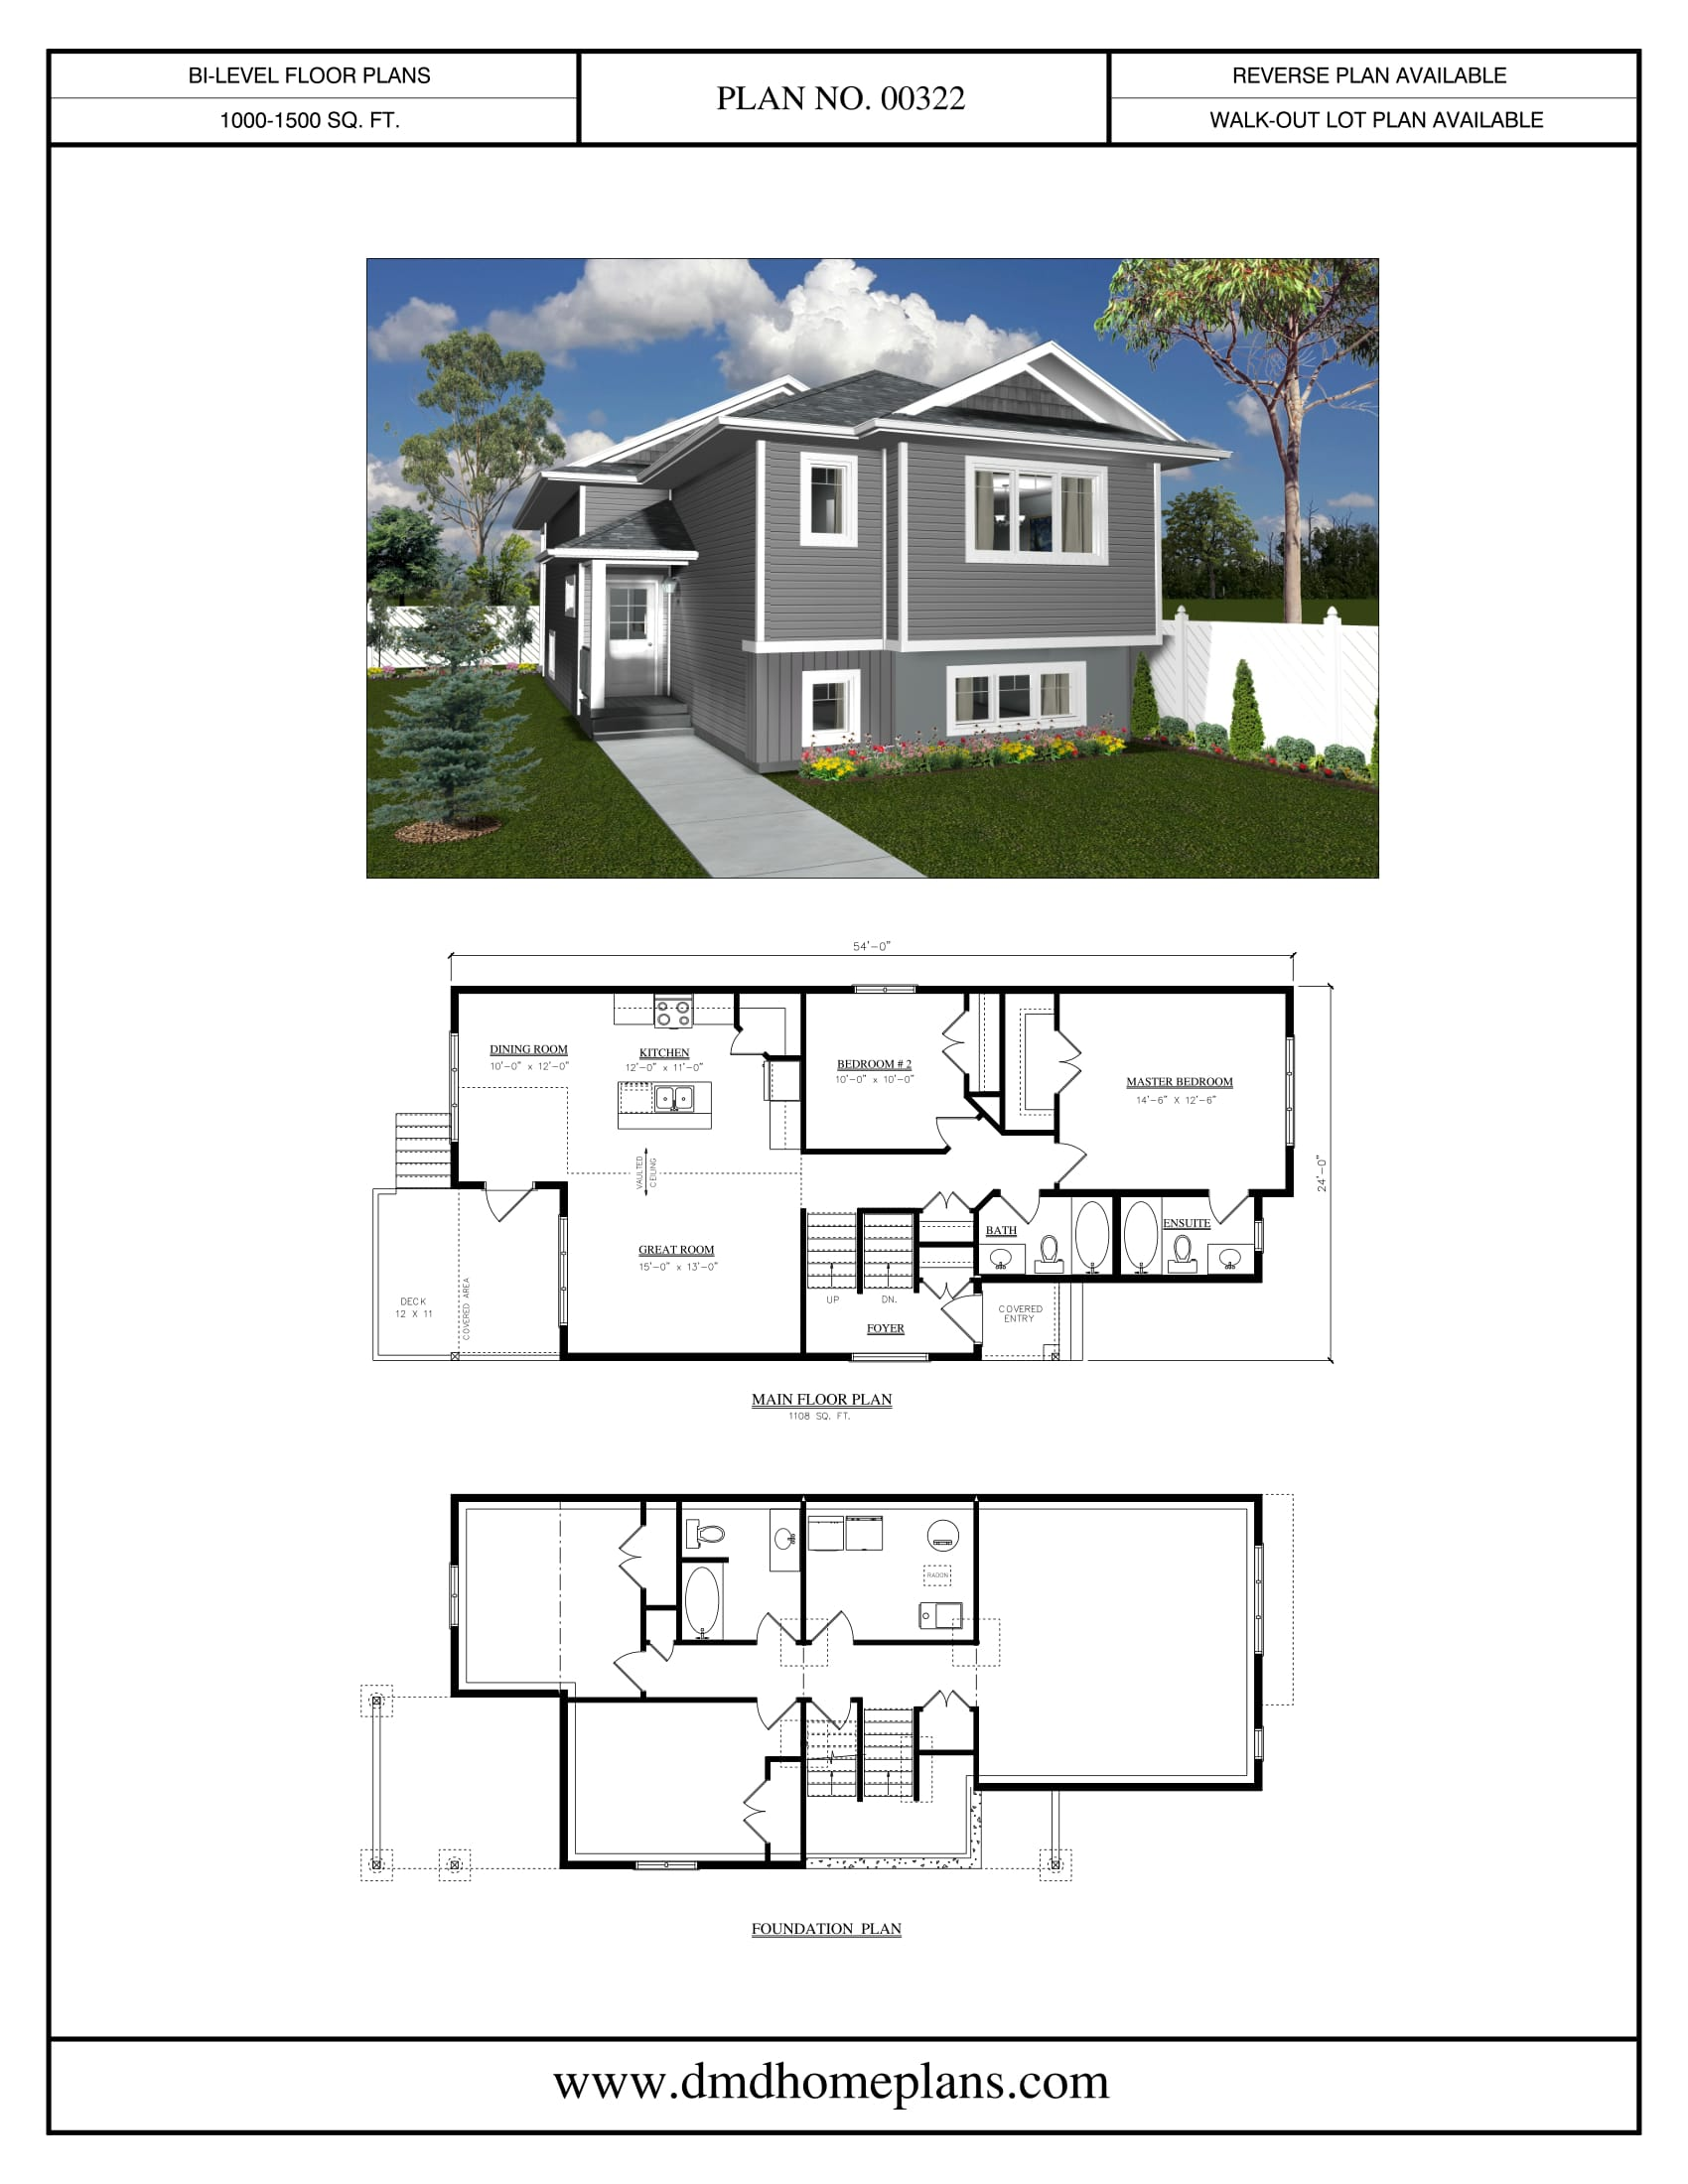 Collection of bi level plans dmd home split level homes Modified bi level home plans